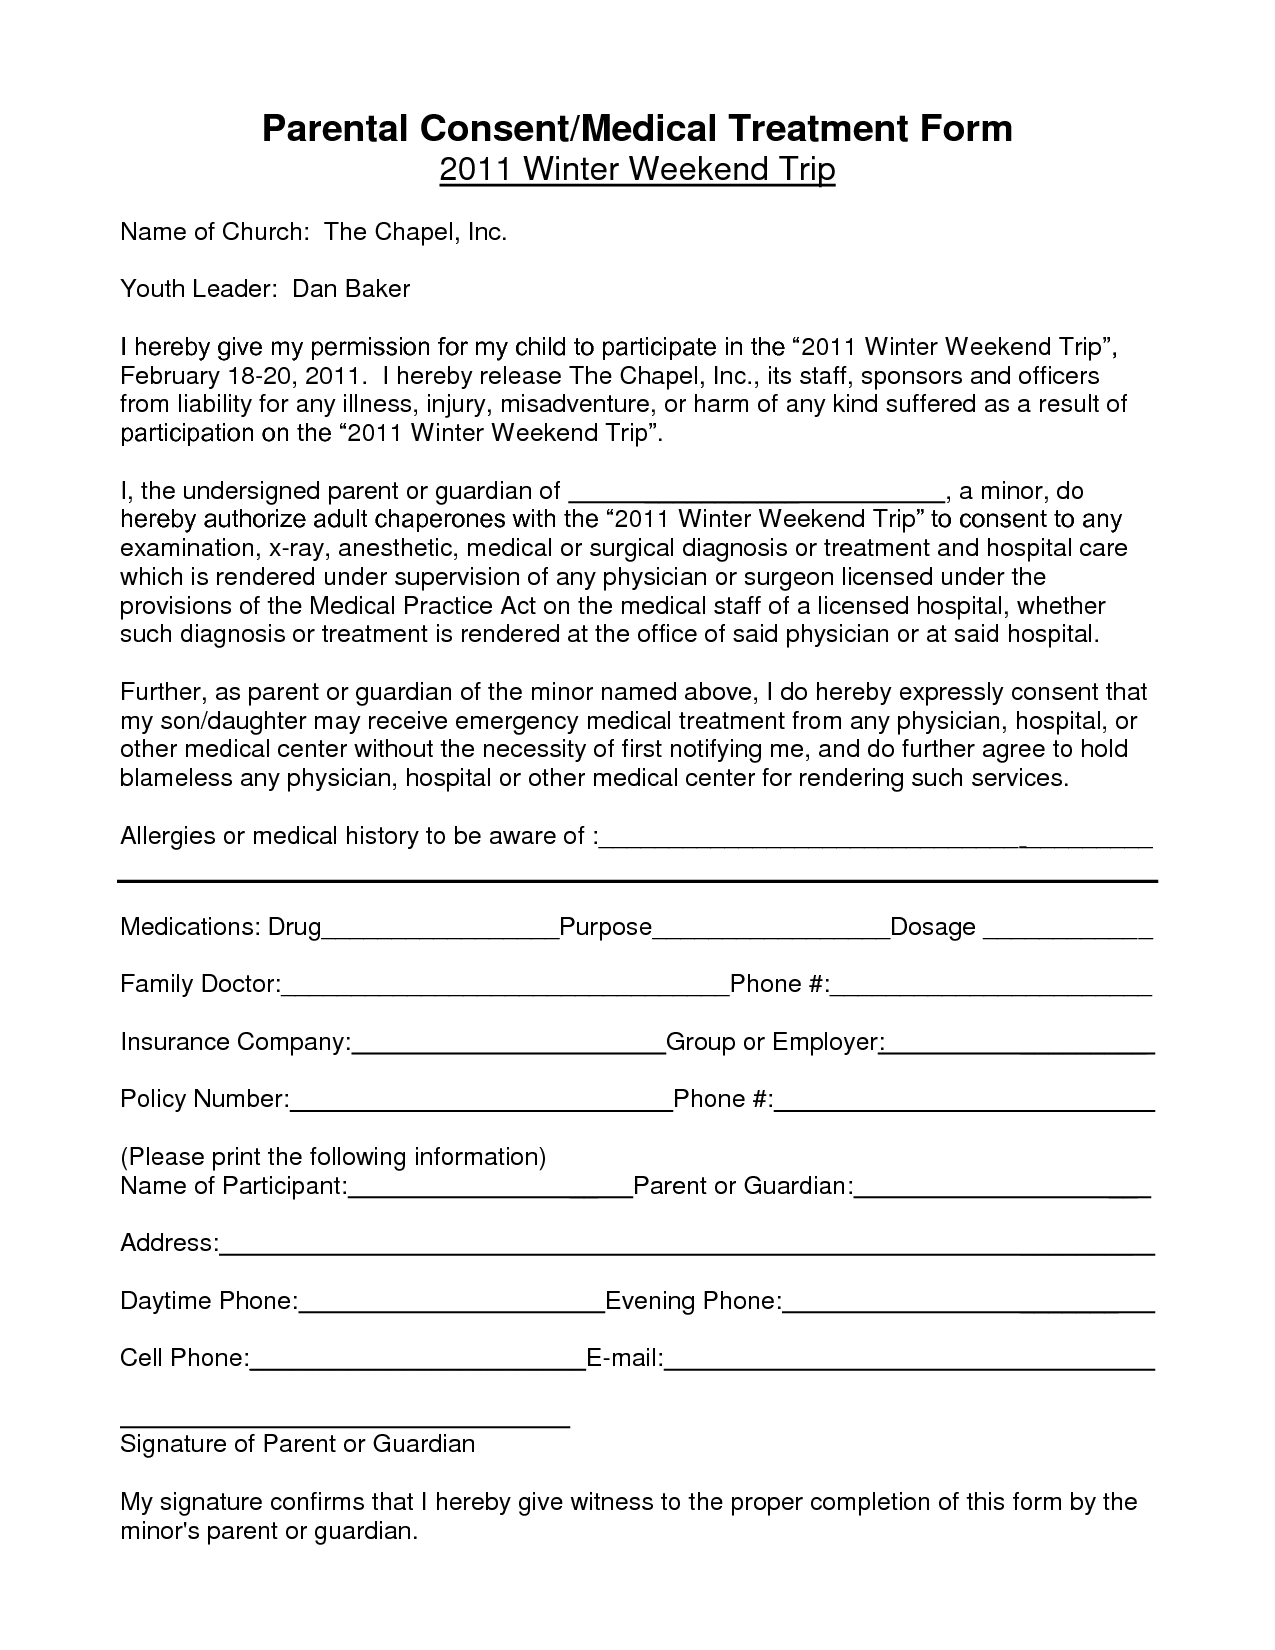 Parental consent form template child medical consent form templates 6 samples for word spiritdancerdesigns Choice Image